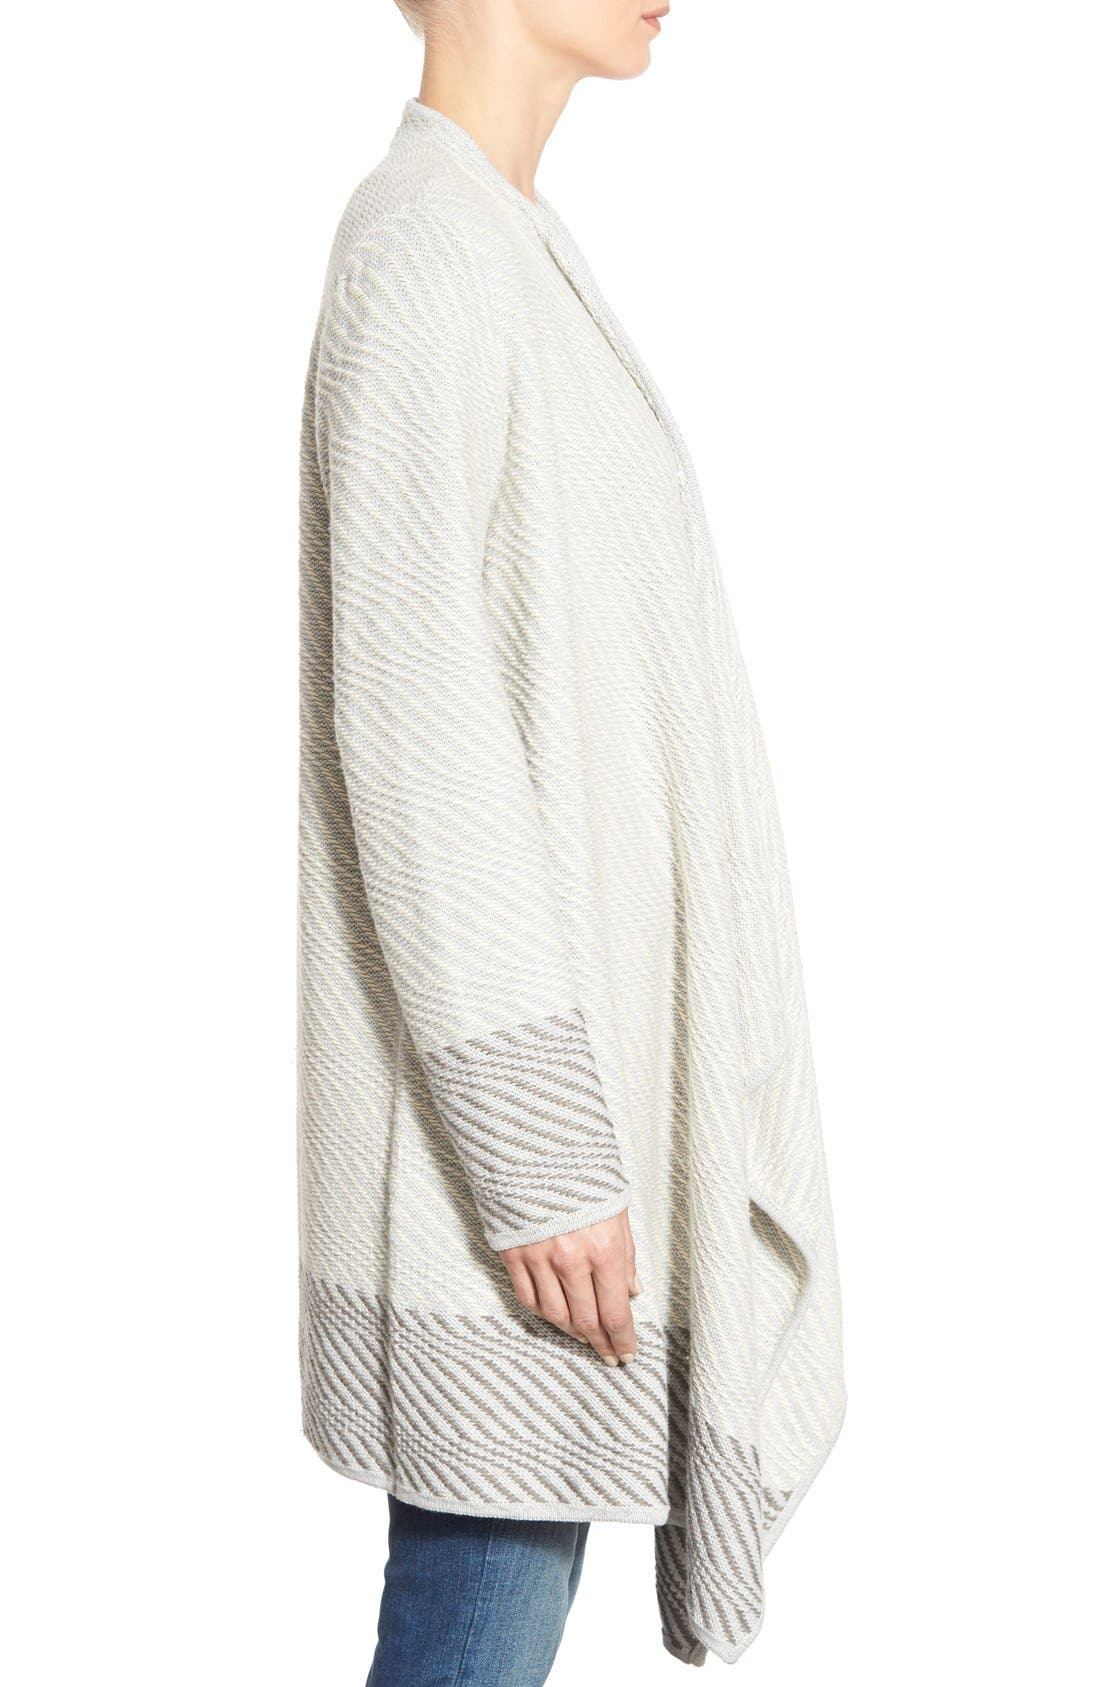 LUCKY BRAND, Waterfall Cardigan, Alternate thumbnail 4, color, 100